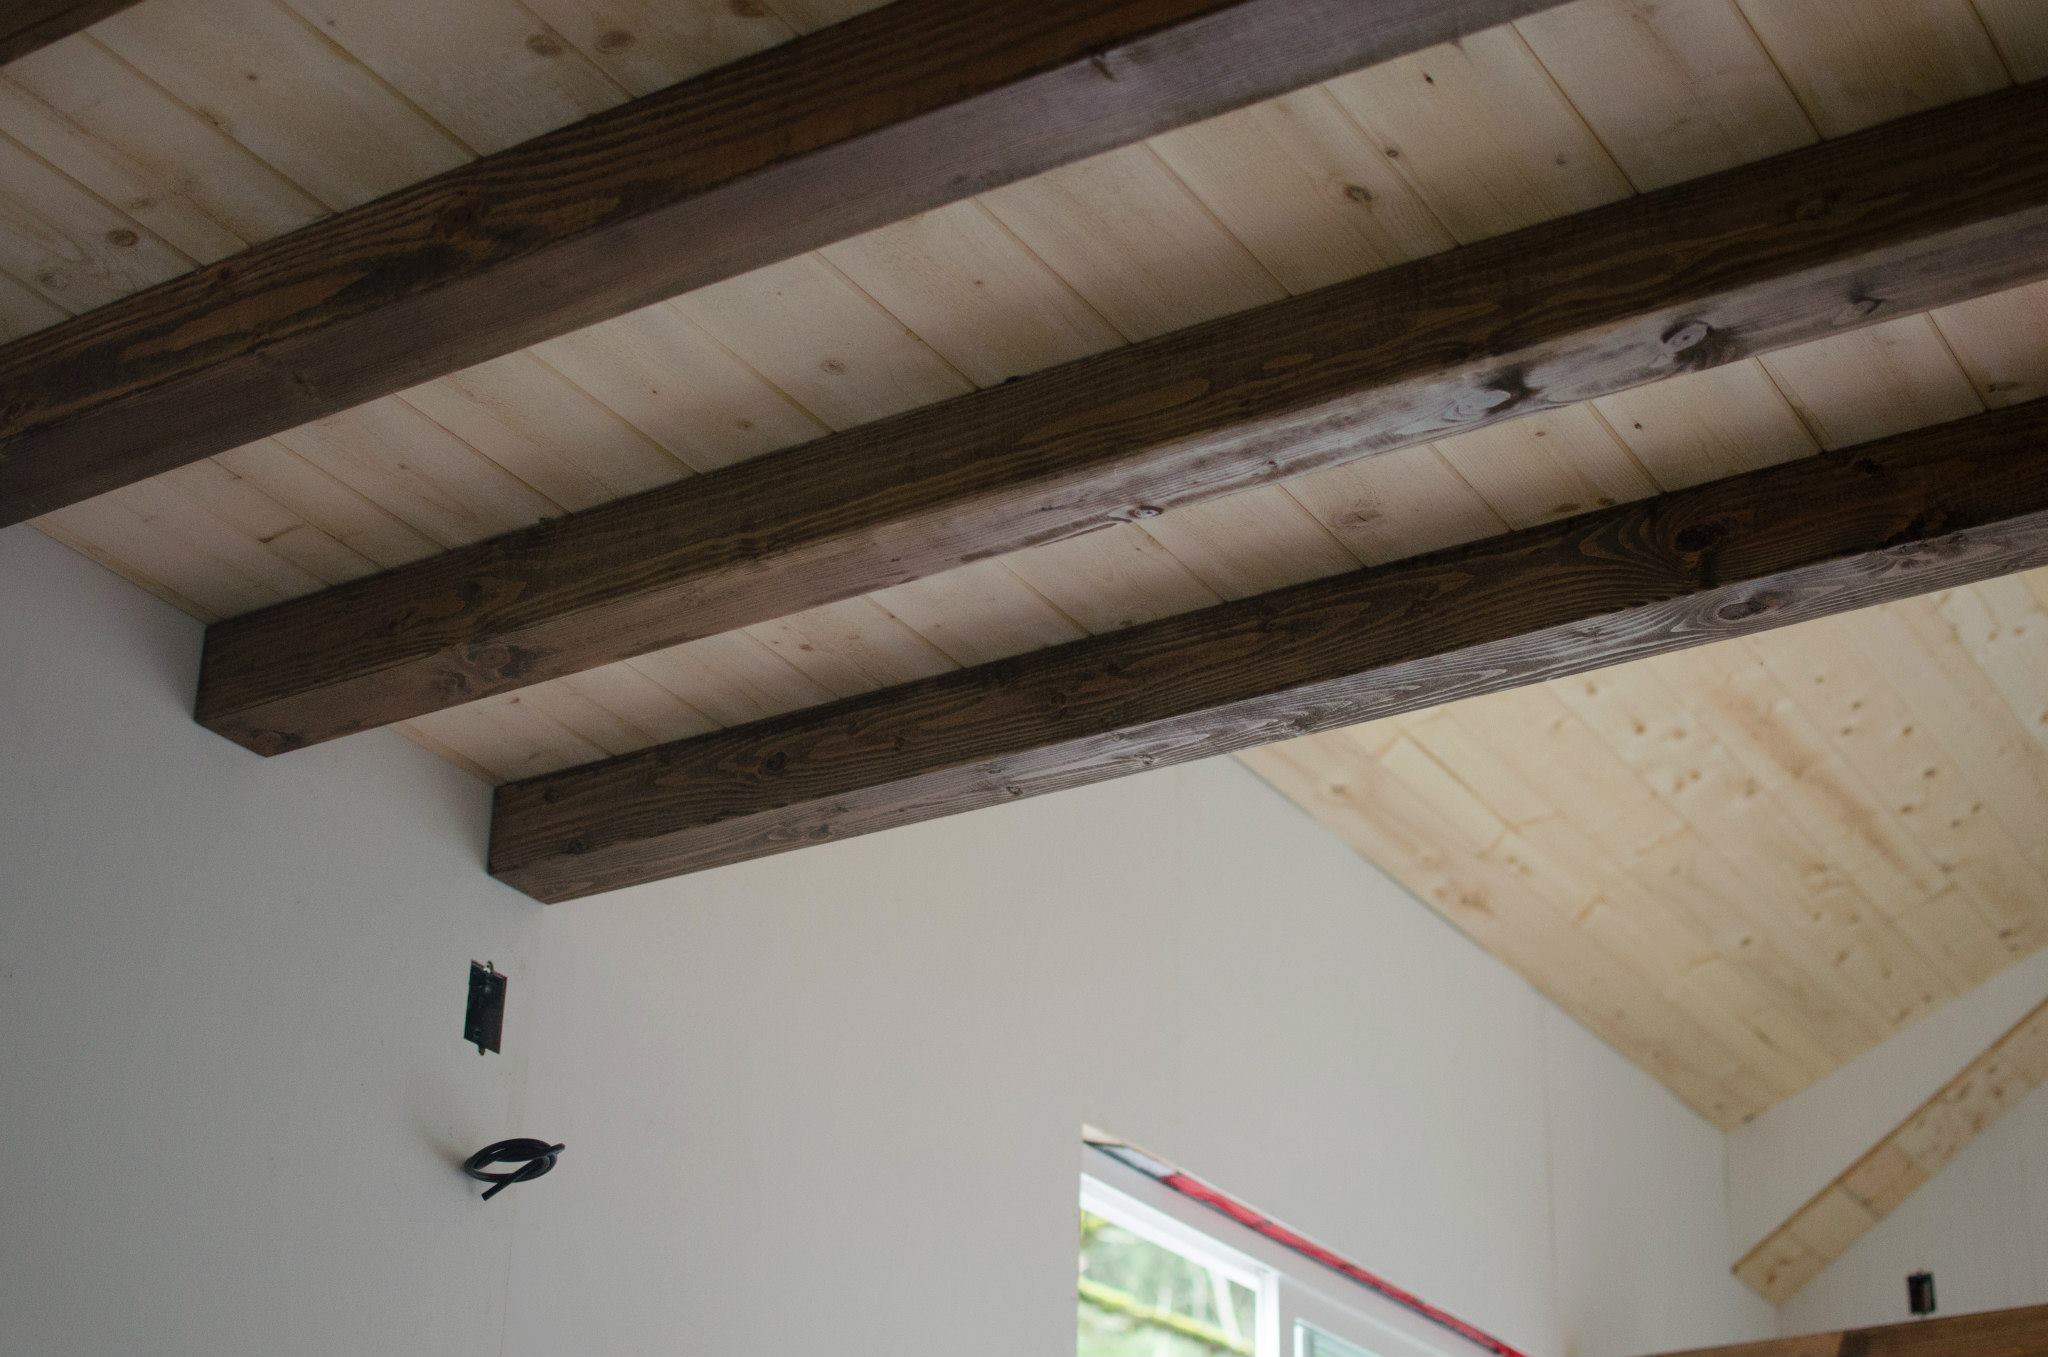 The beams in the living room are custom-milled cedar beams, hand-stained to match the floor.